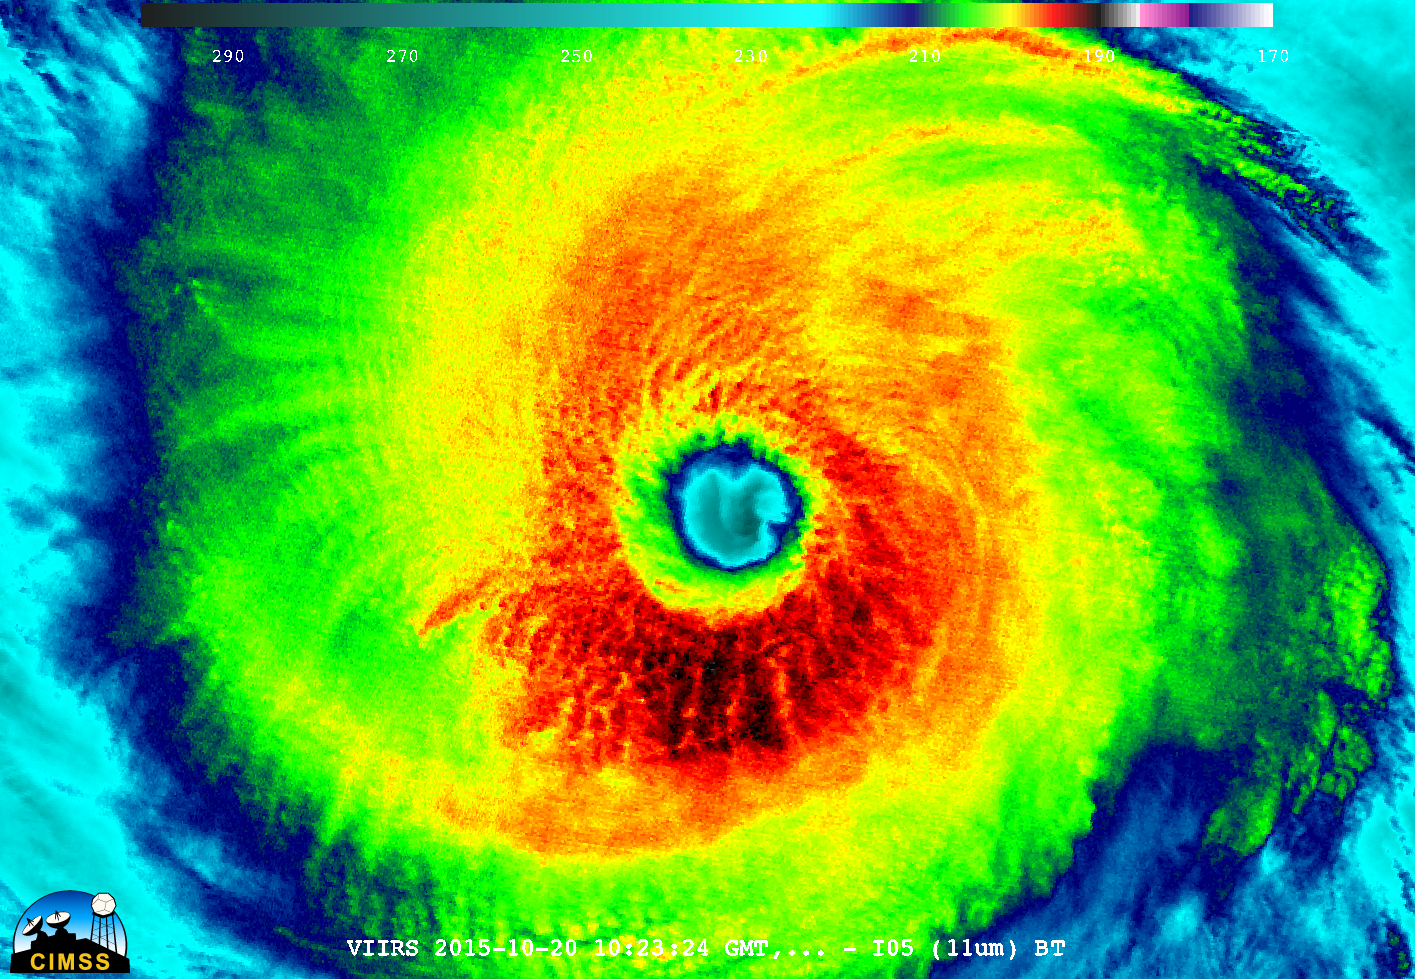 Suomi NPP VIIRS Infrared (11.45 µm) image [click to enlarge]